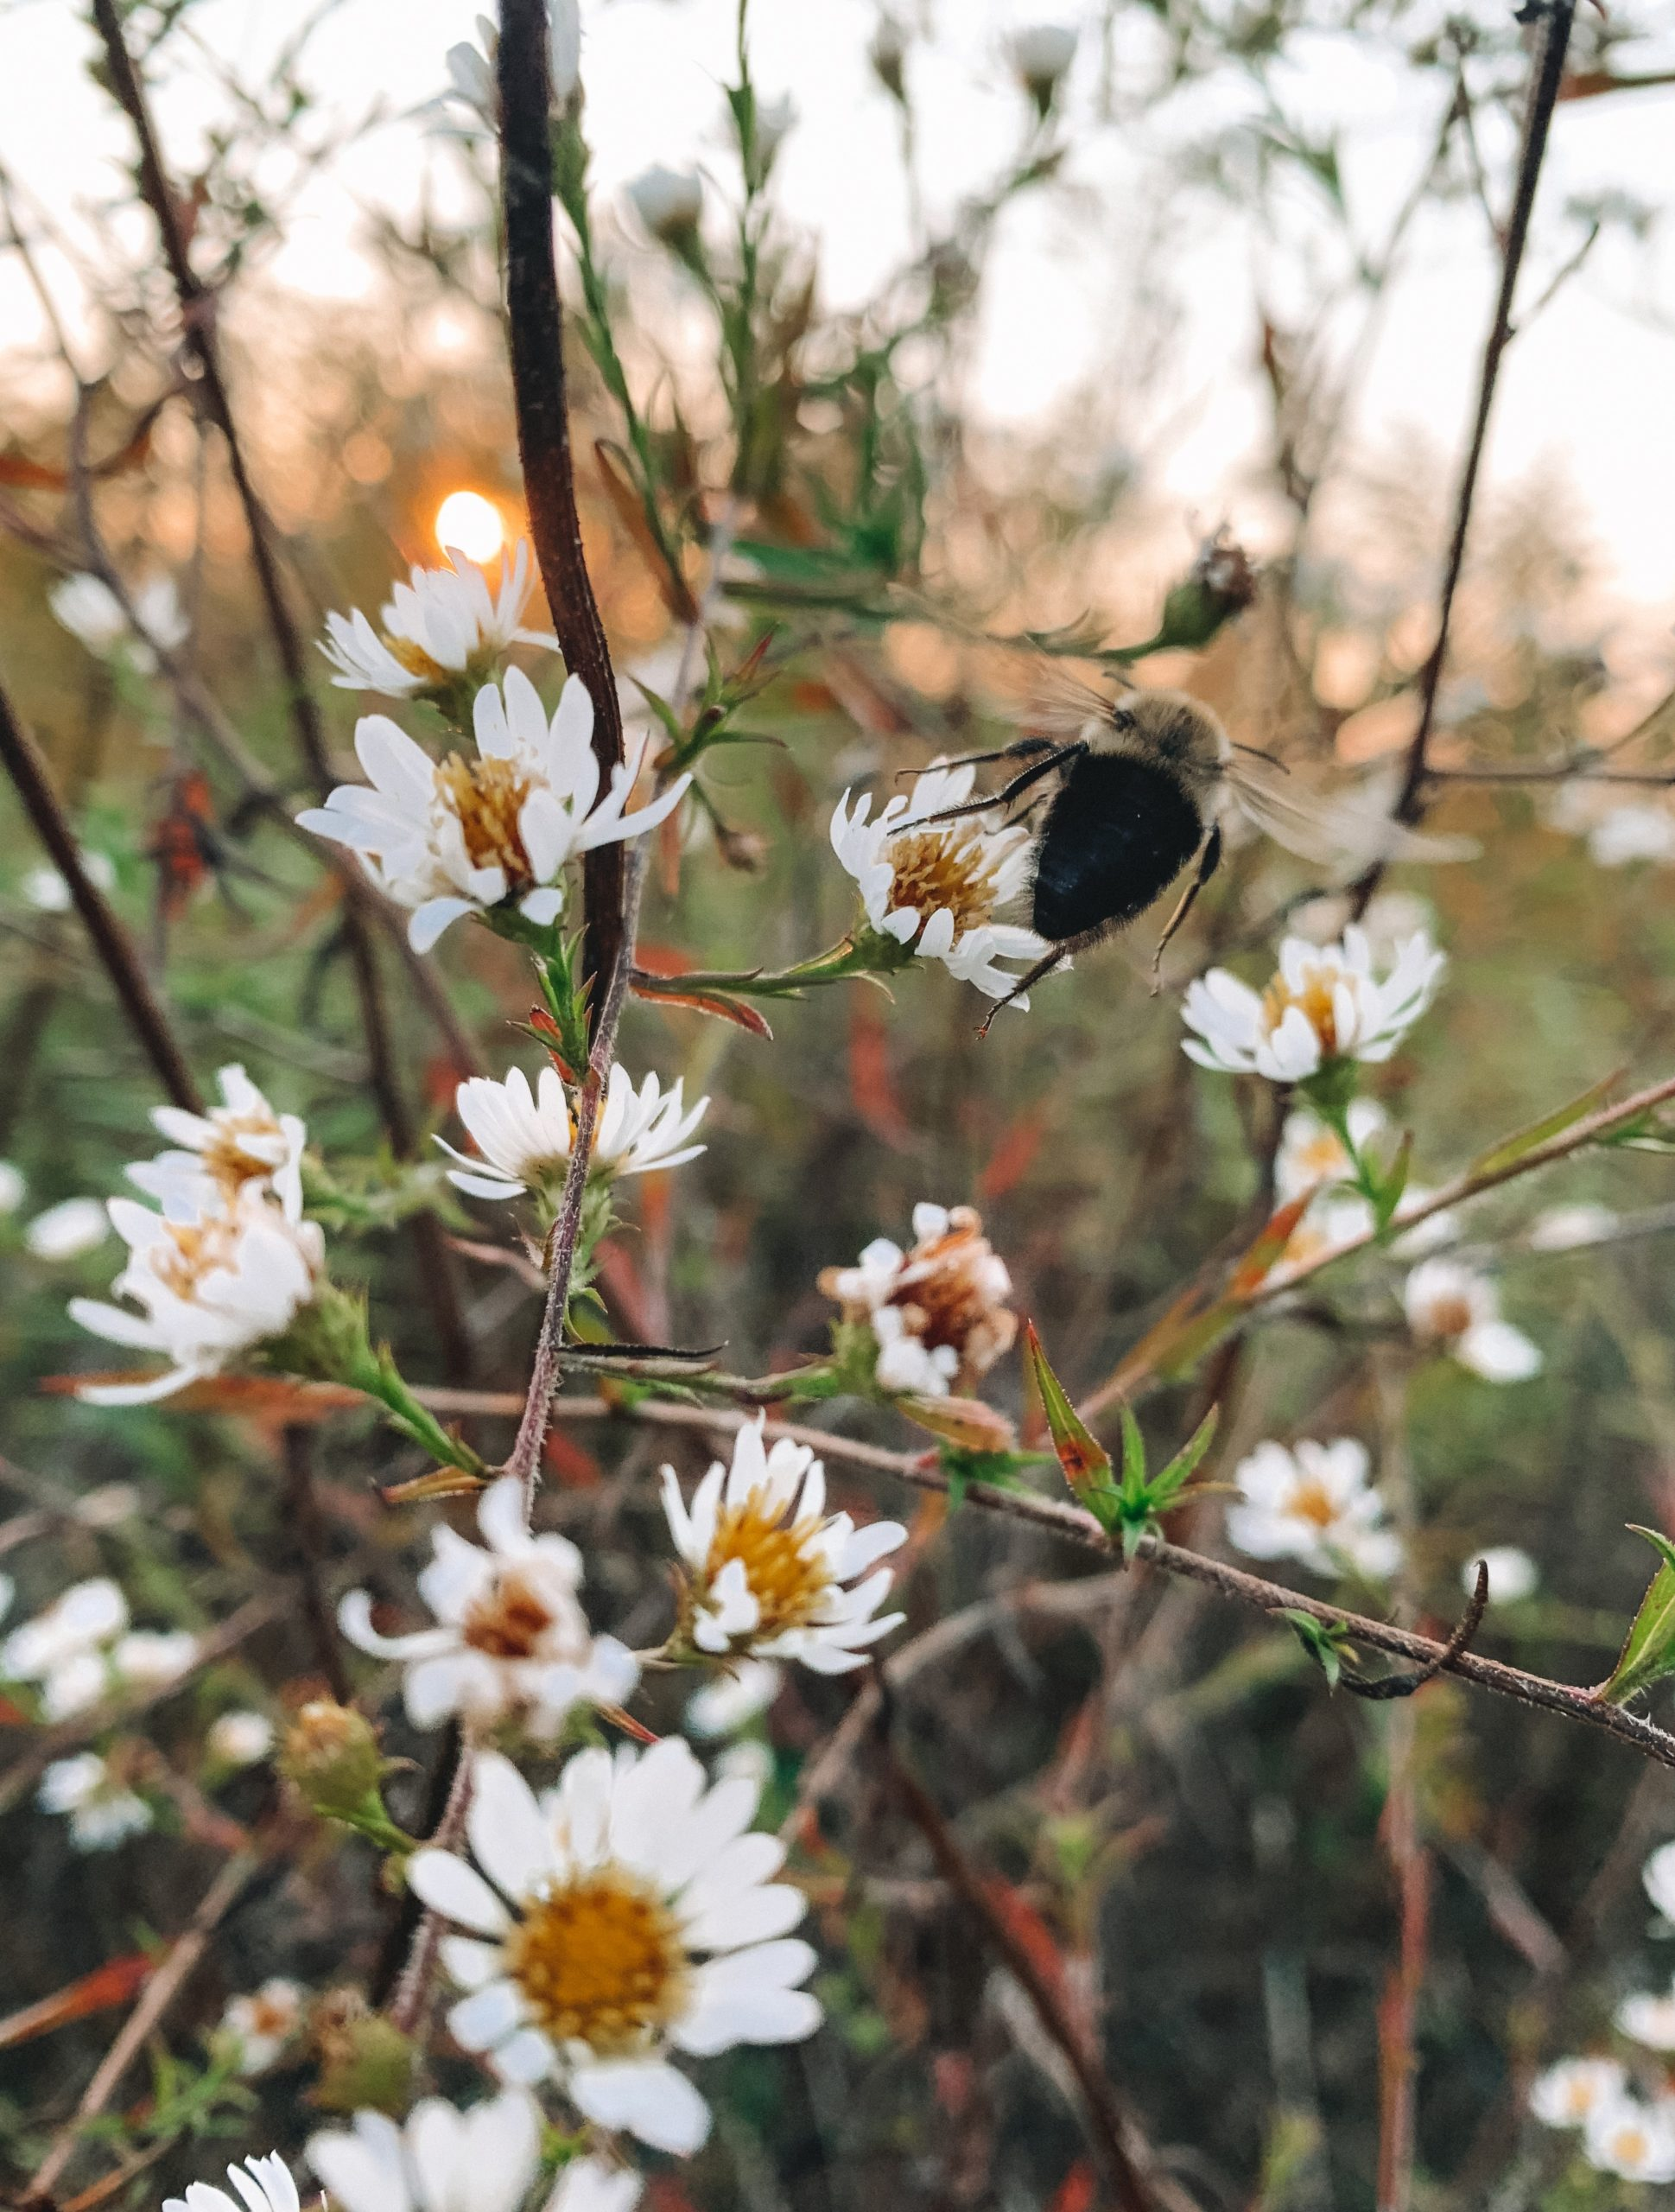 Helping Pollinators in the fall